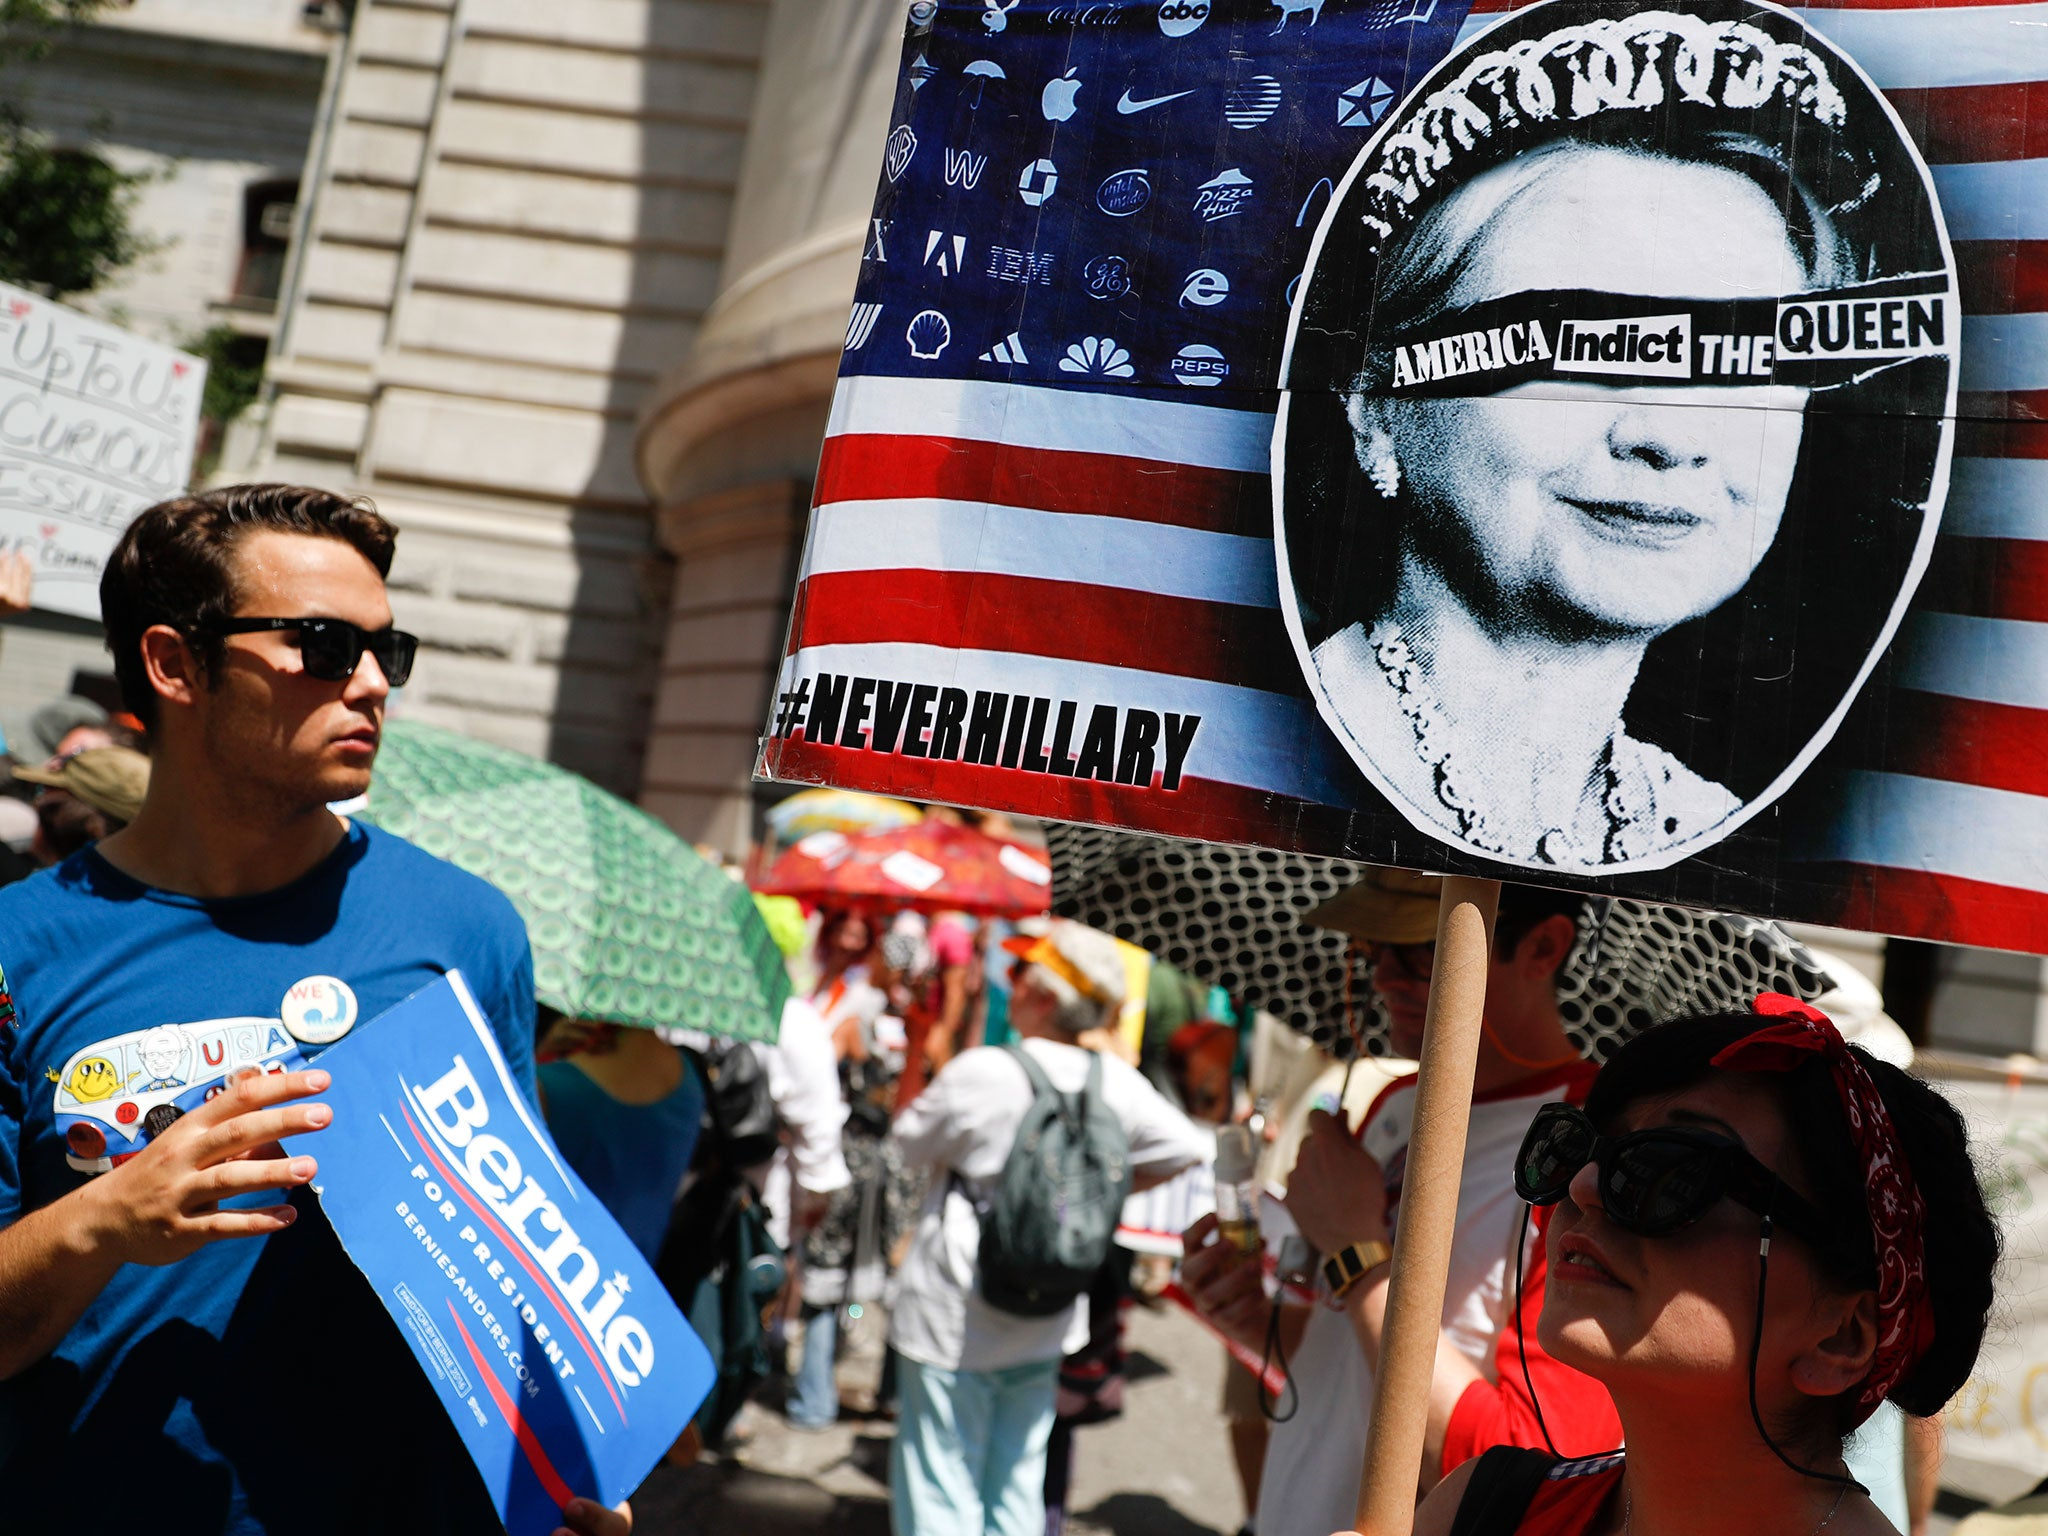 Clinton defused party disunity having her opponents speak first ...